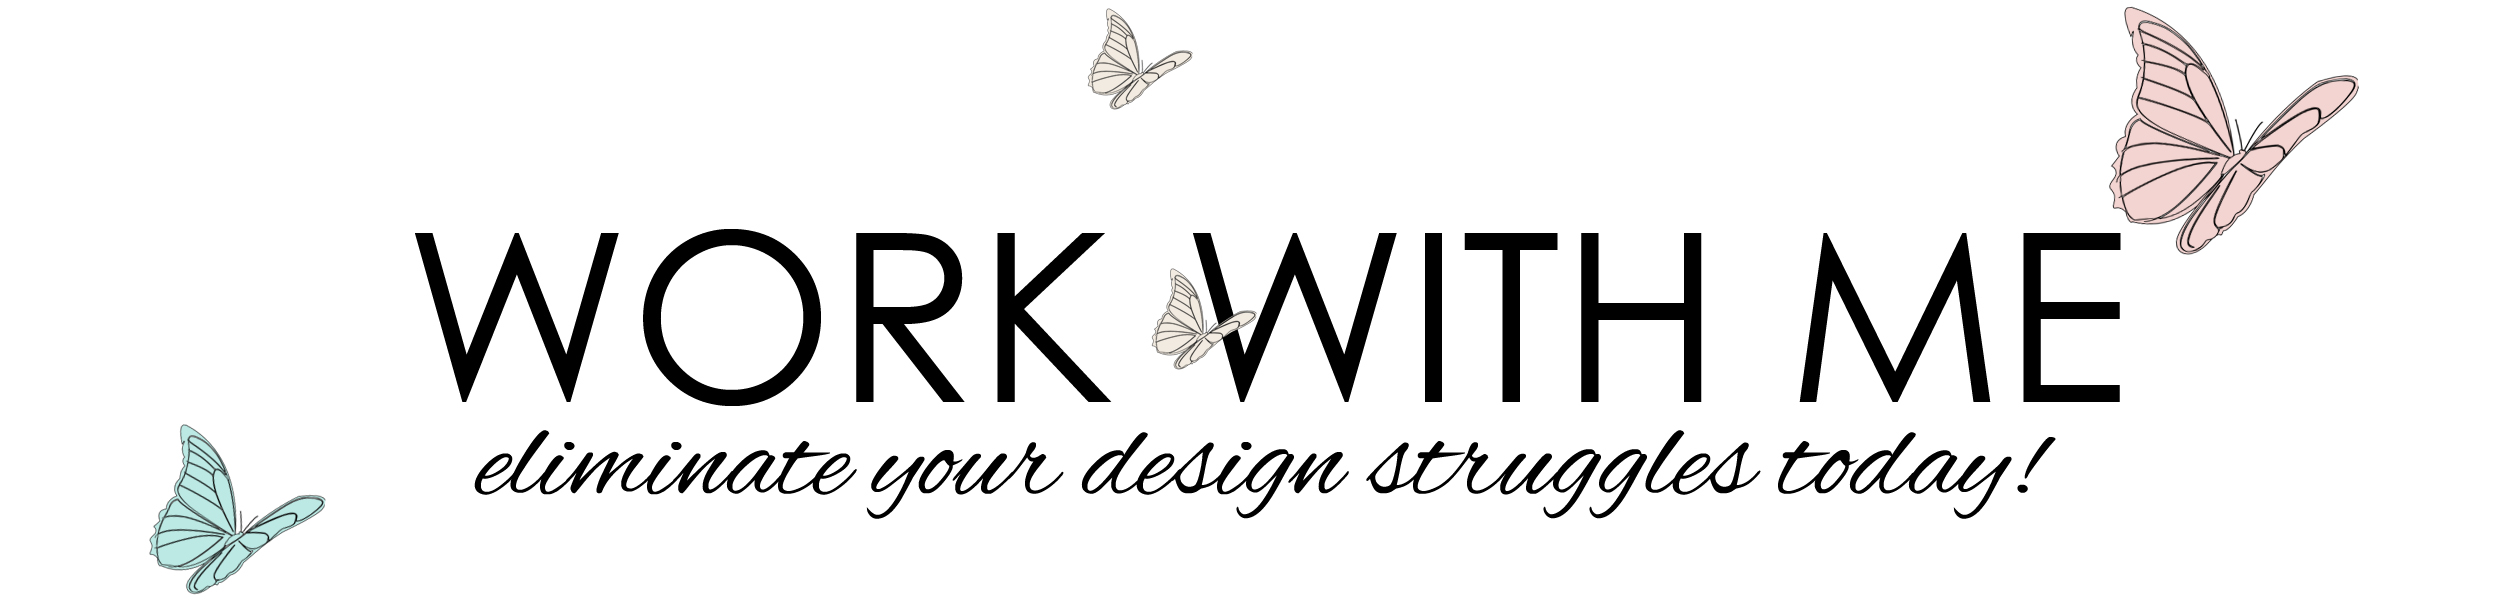 Eliminate all your design struggles today by working with me!